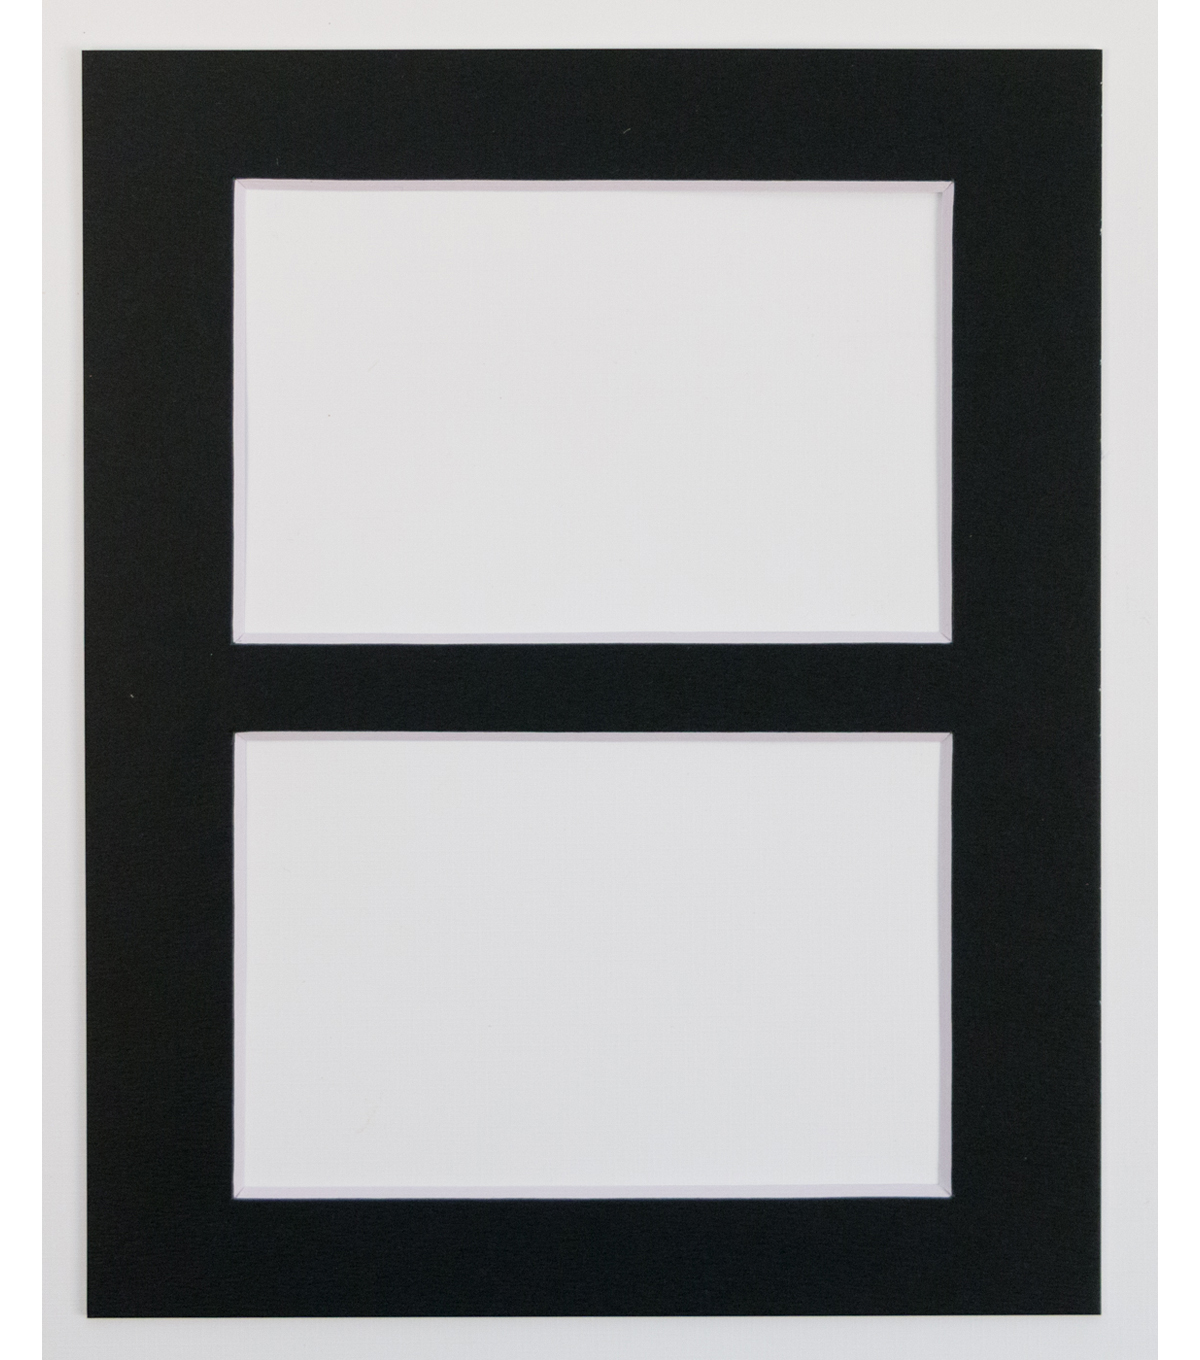 Framing Mat 8X10-Black